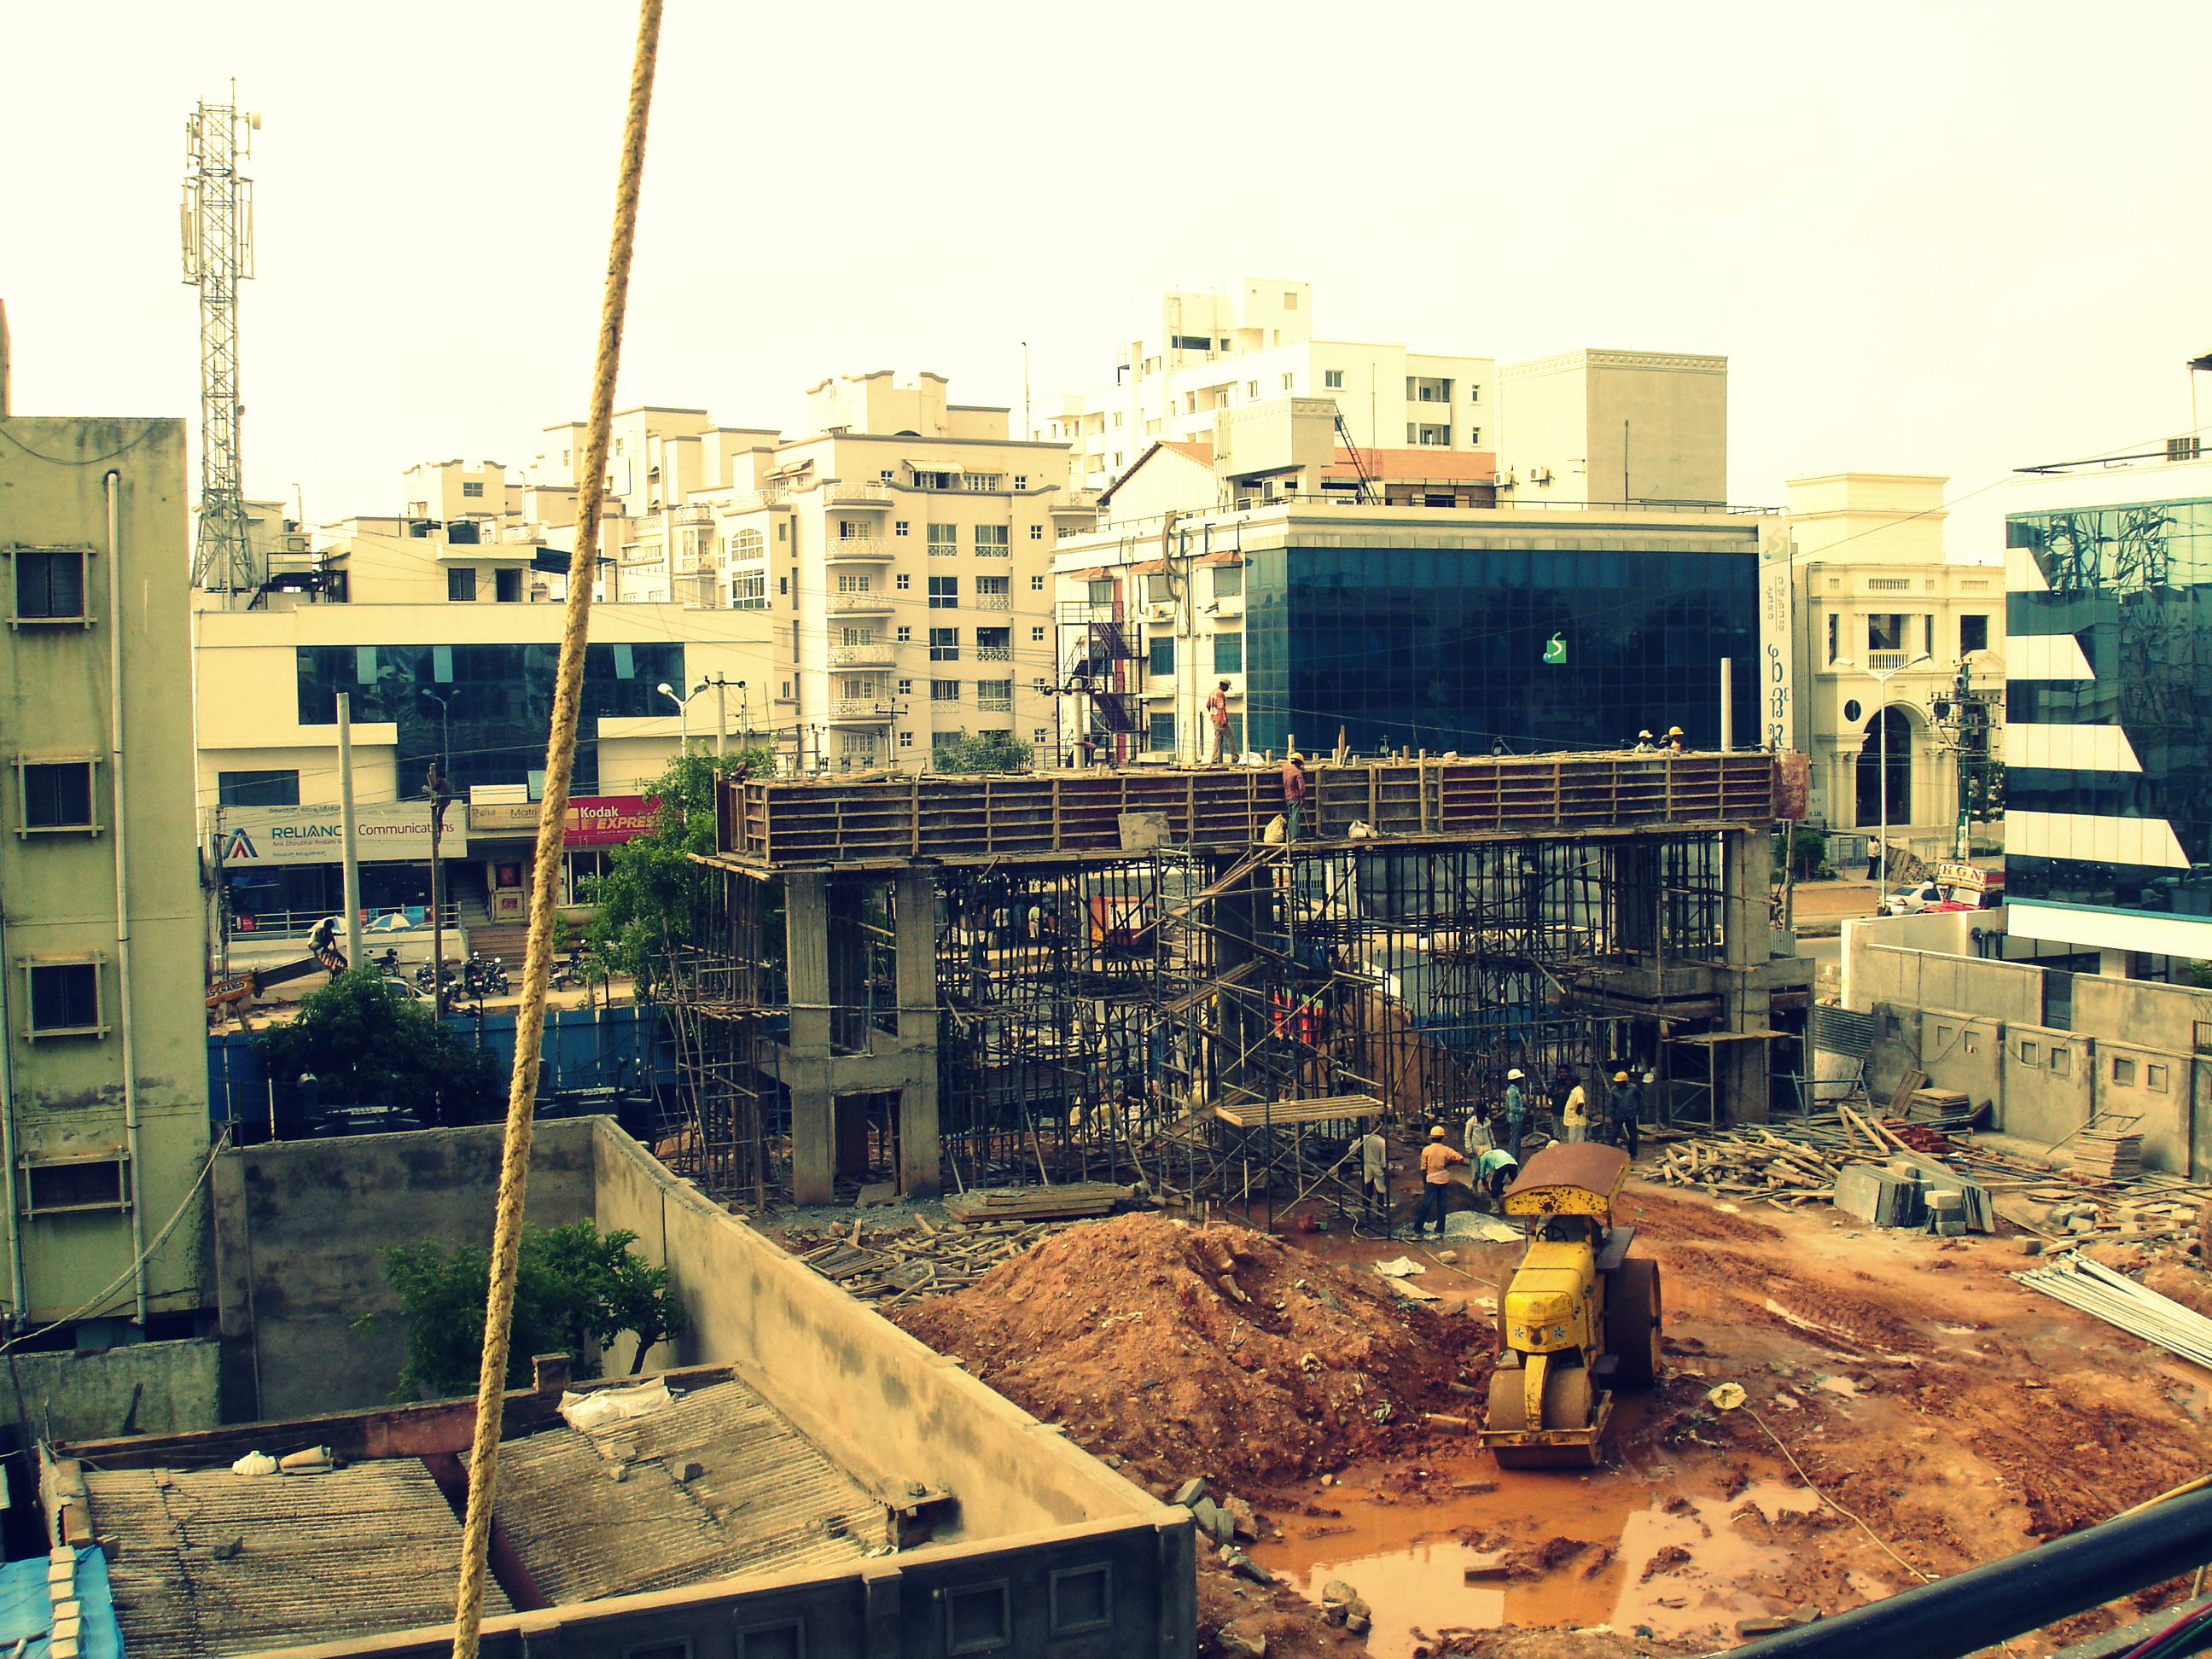 Bangalore probably has more buildings under construction than completed ones.